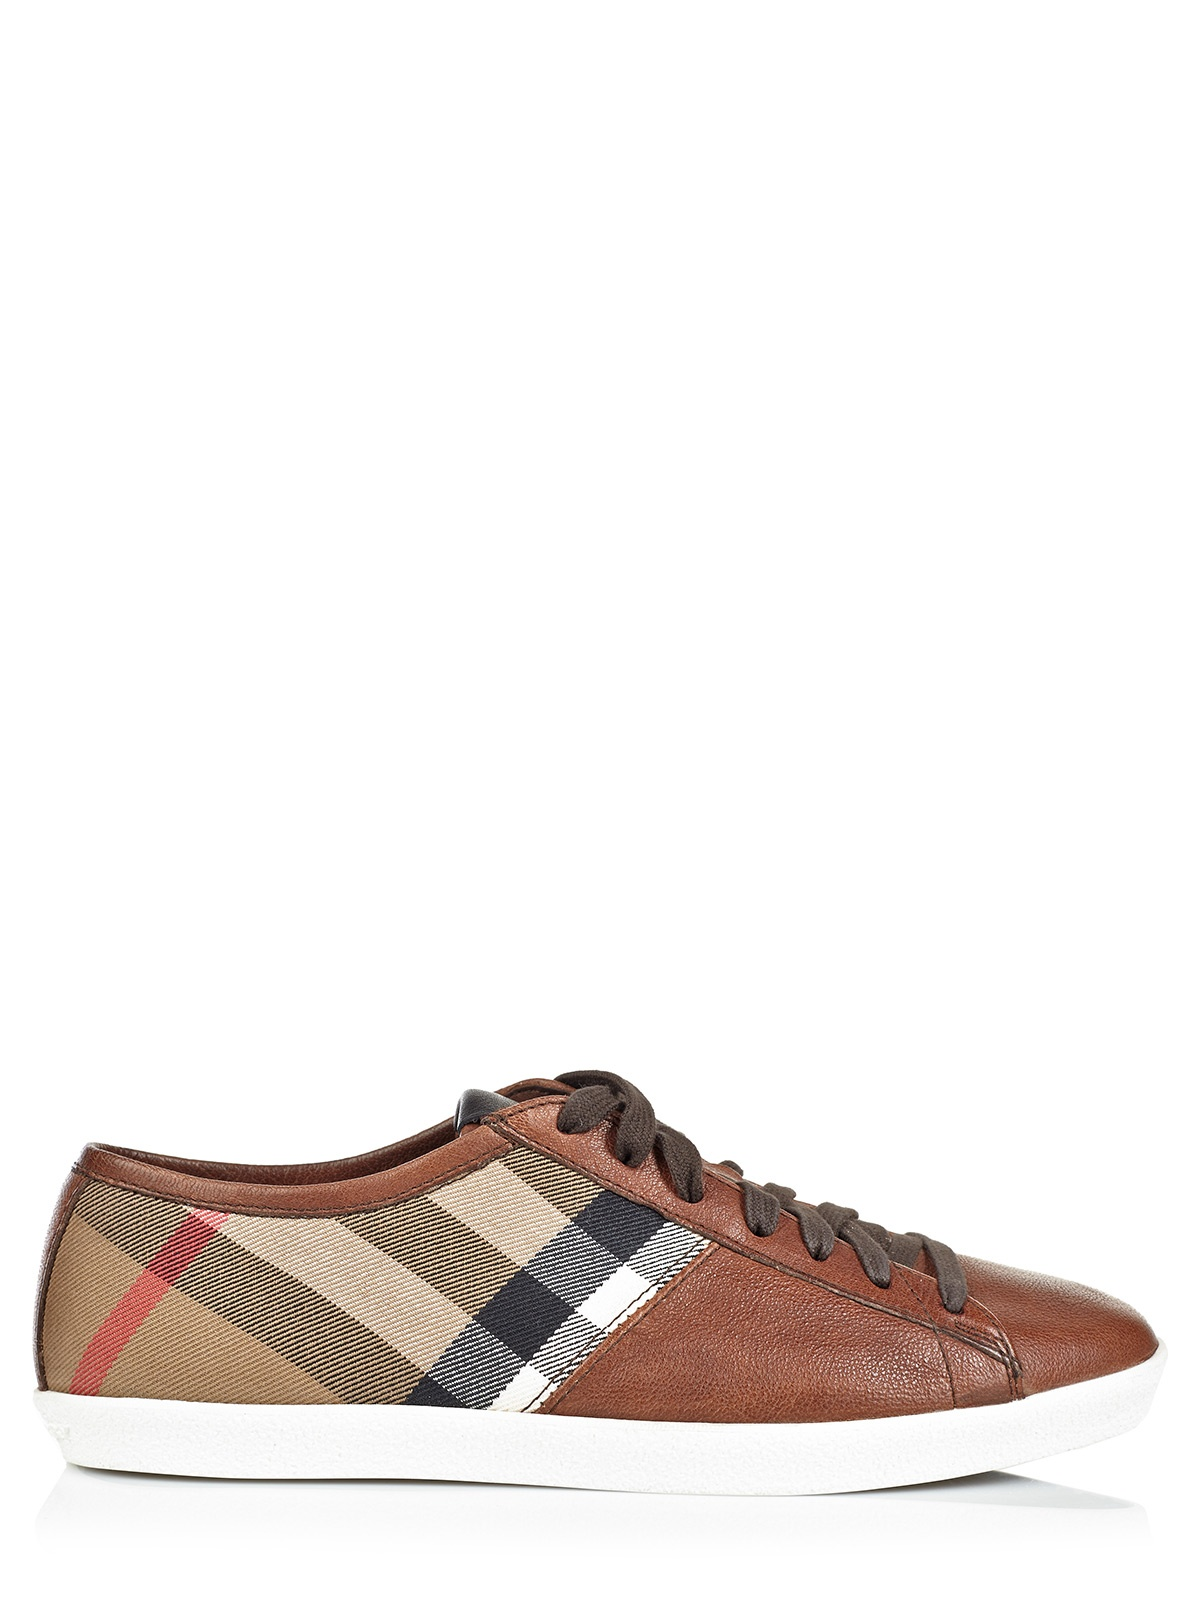 burberry shoes brown in brown for lyst